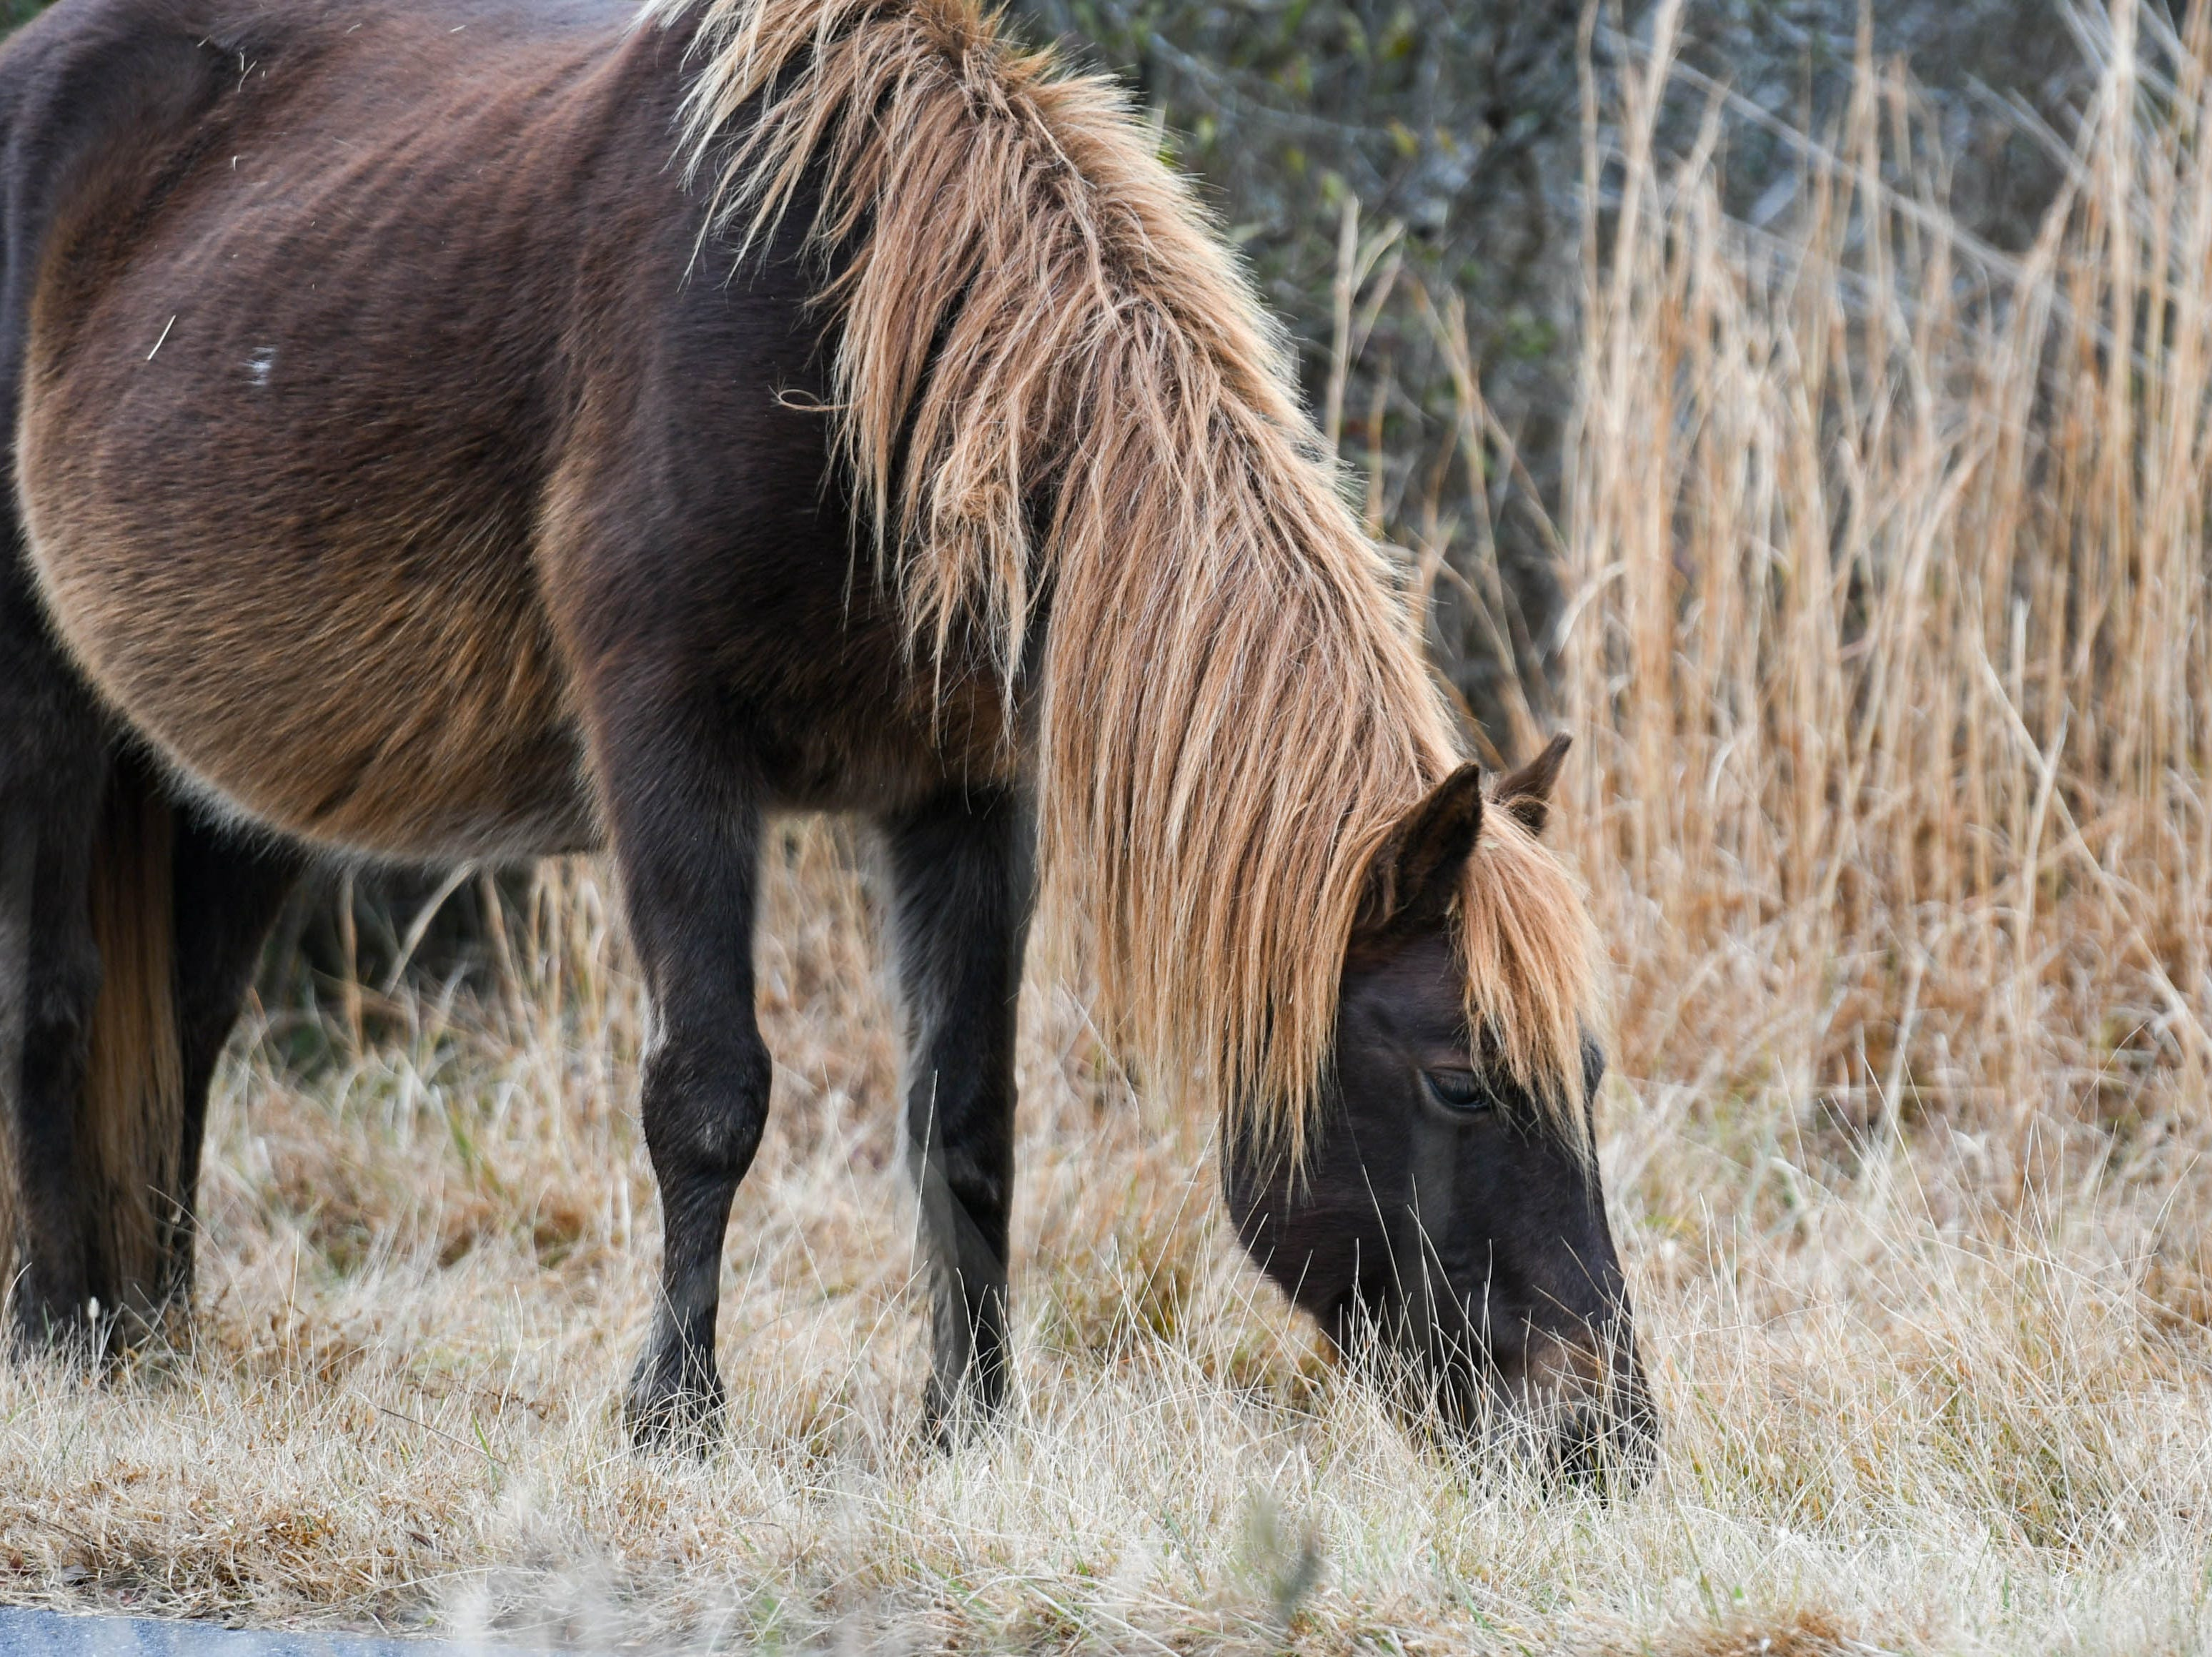 A pony grazes on the road leading to Assateague National Park on Thursday, Jan 3, 2018. The park remains open during the federal government shutdown, however facilities and the visitors center are closed.